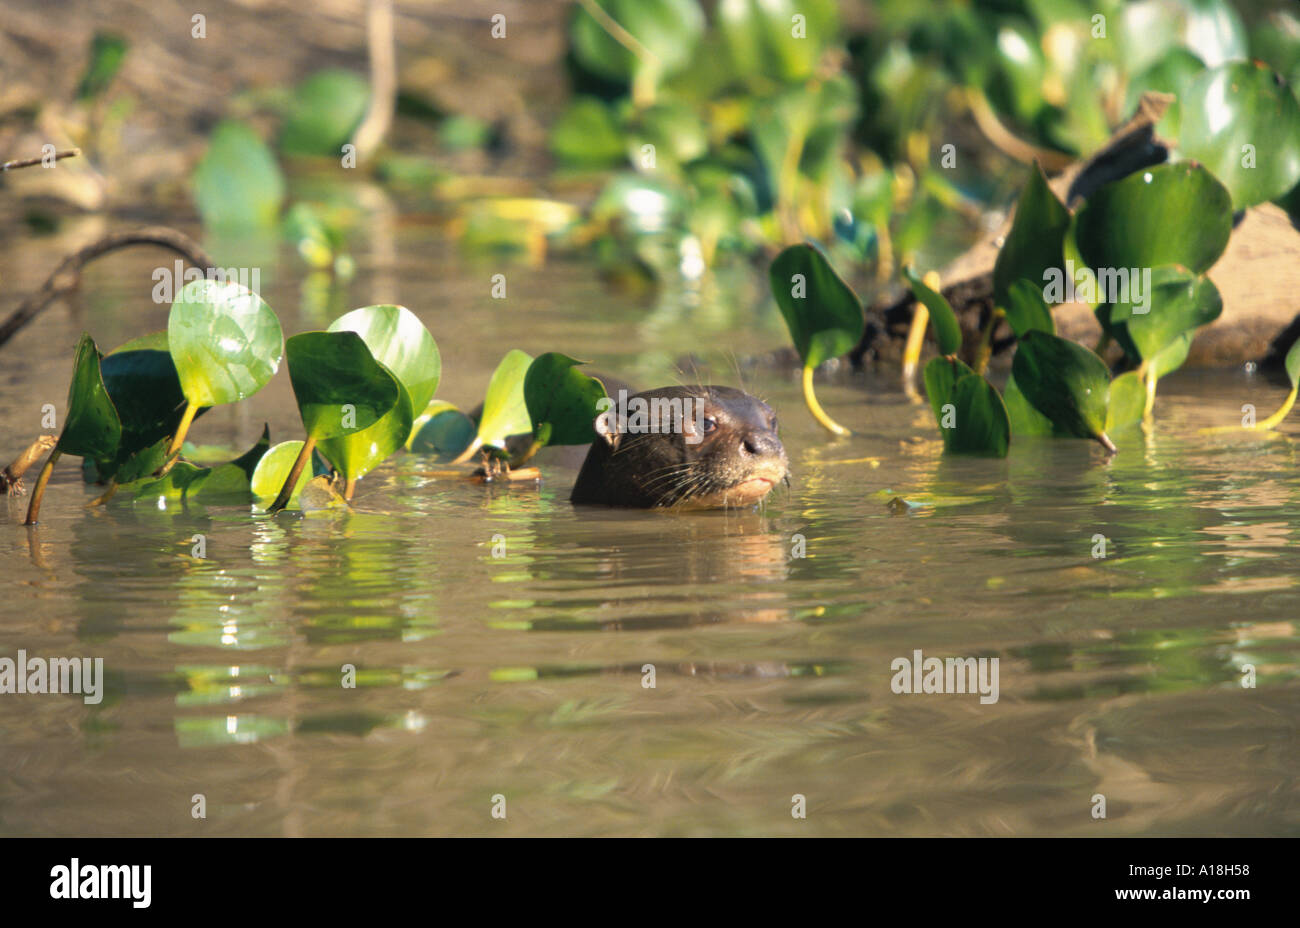 giant otter (Pteronura brasiliensis), head looking out of a body of water. - Stock Image